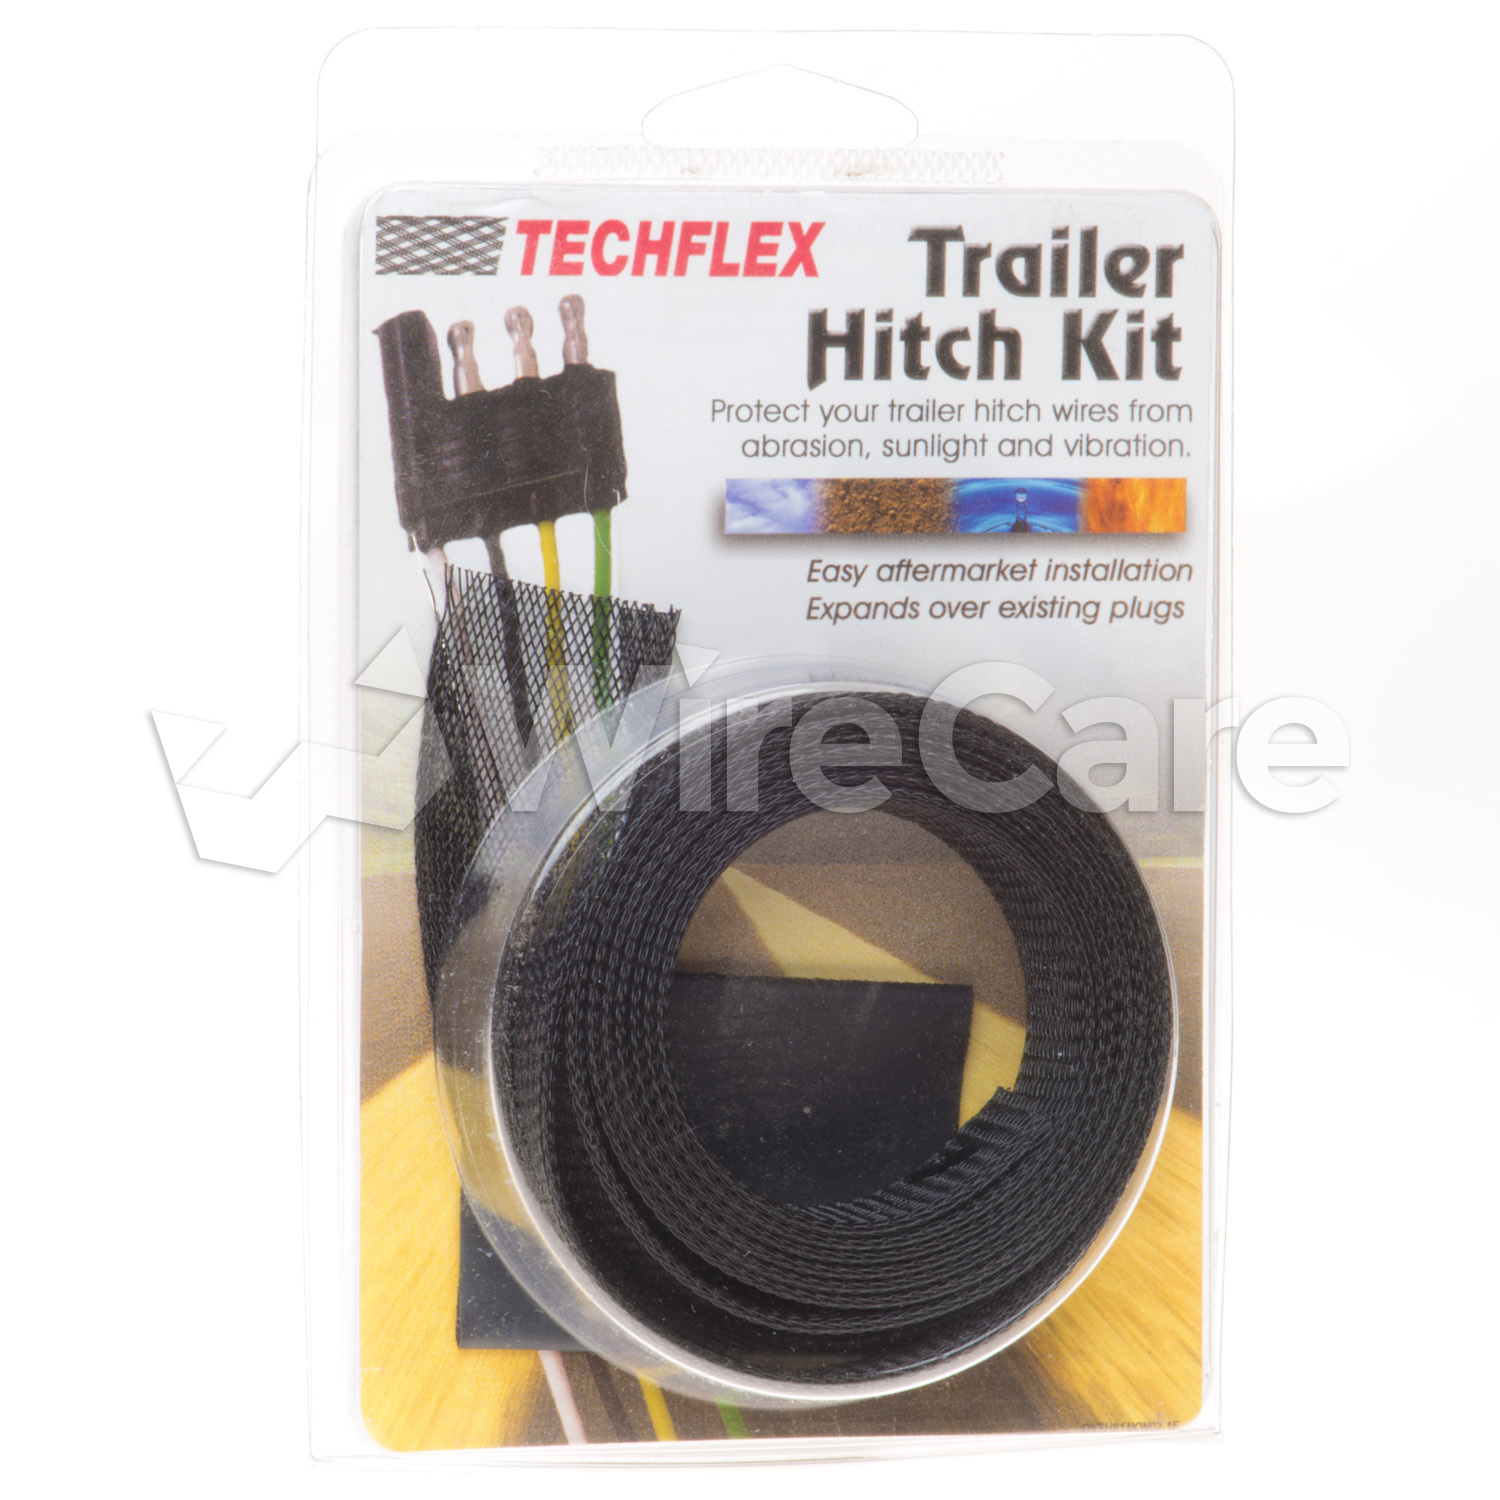 Pleasant Trailer Harness Protection Kit Wirecare Com Wiring Digital Resources Indicompassionincorg